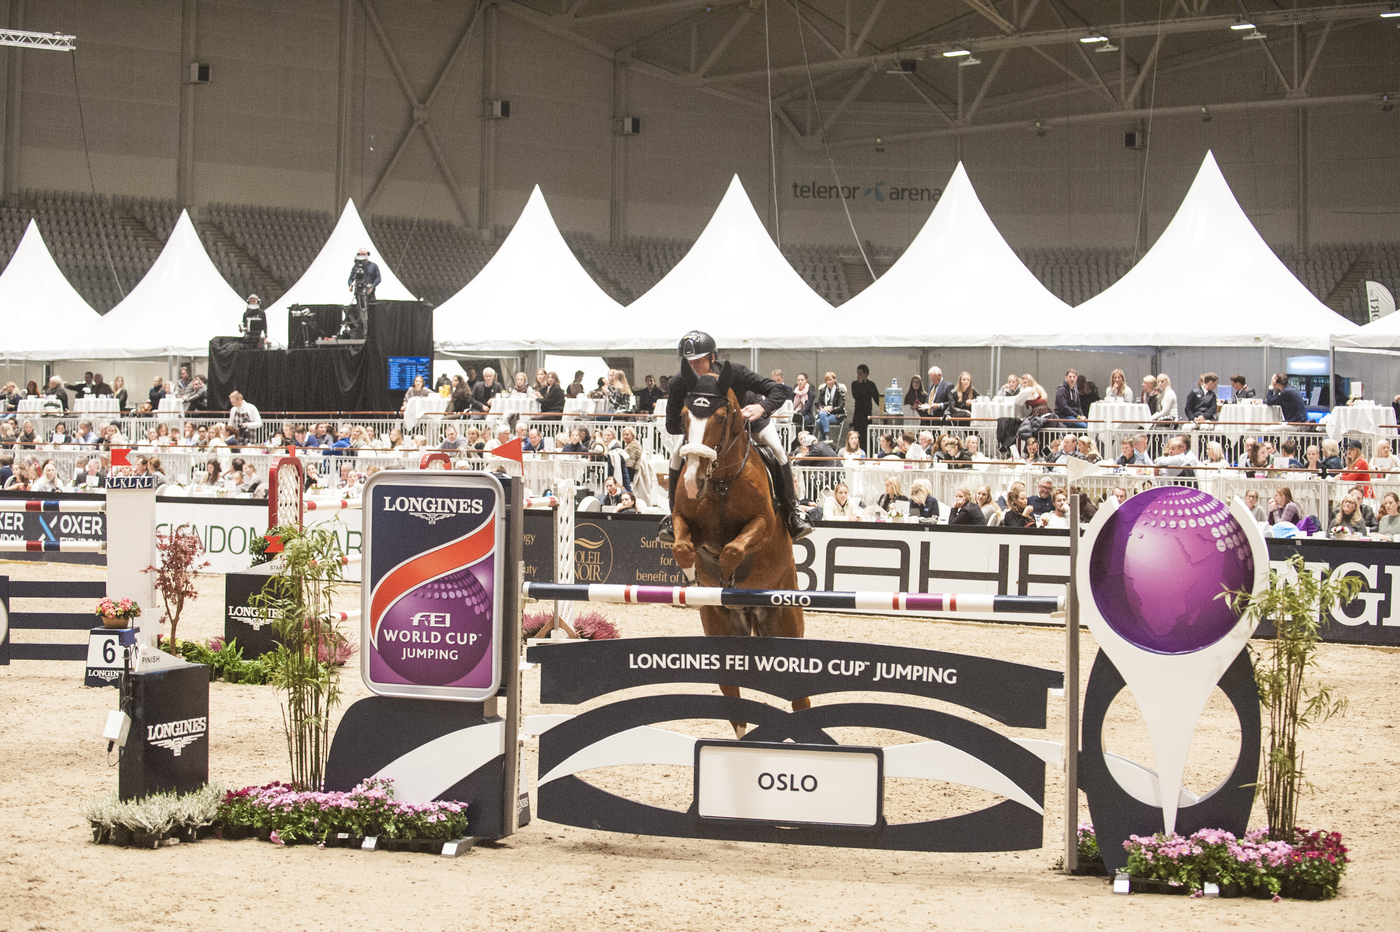 Longines Show Jumping Event: The CSI 5* - W La Coruña joins the Longines FEI World Cup™ Jumping series, which opened with the victory of Alberto Zorzi and Fair Light van T Heike in Oslo 3